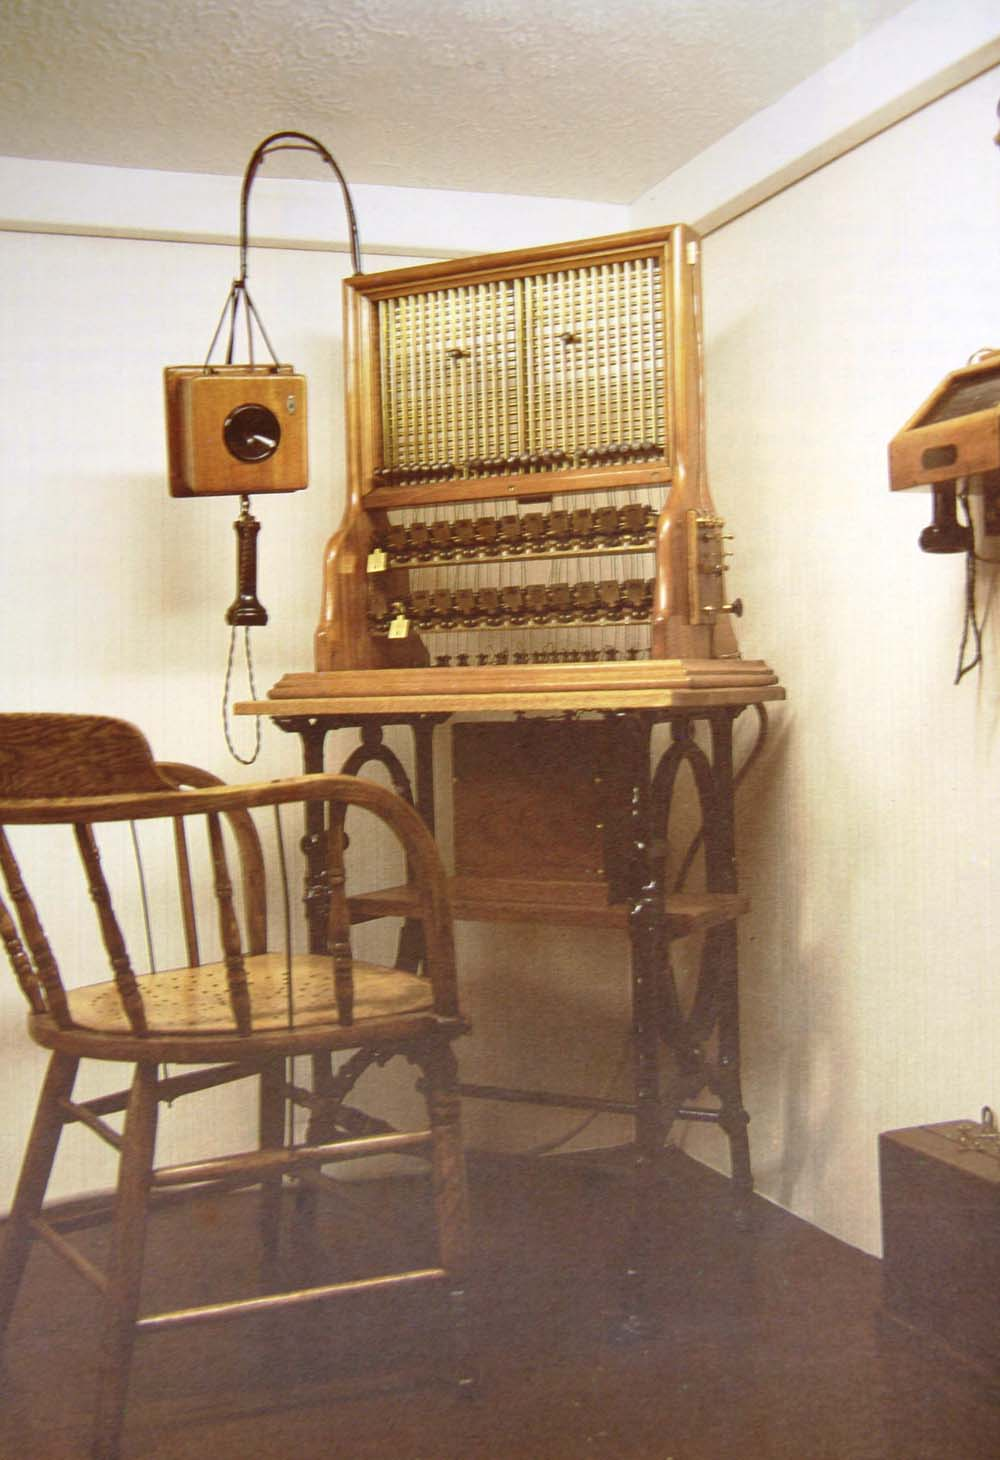 Port Elizabeth of Yore: The Telegraph and Telephones - The